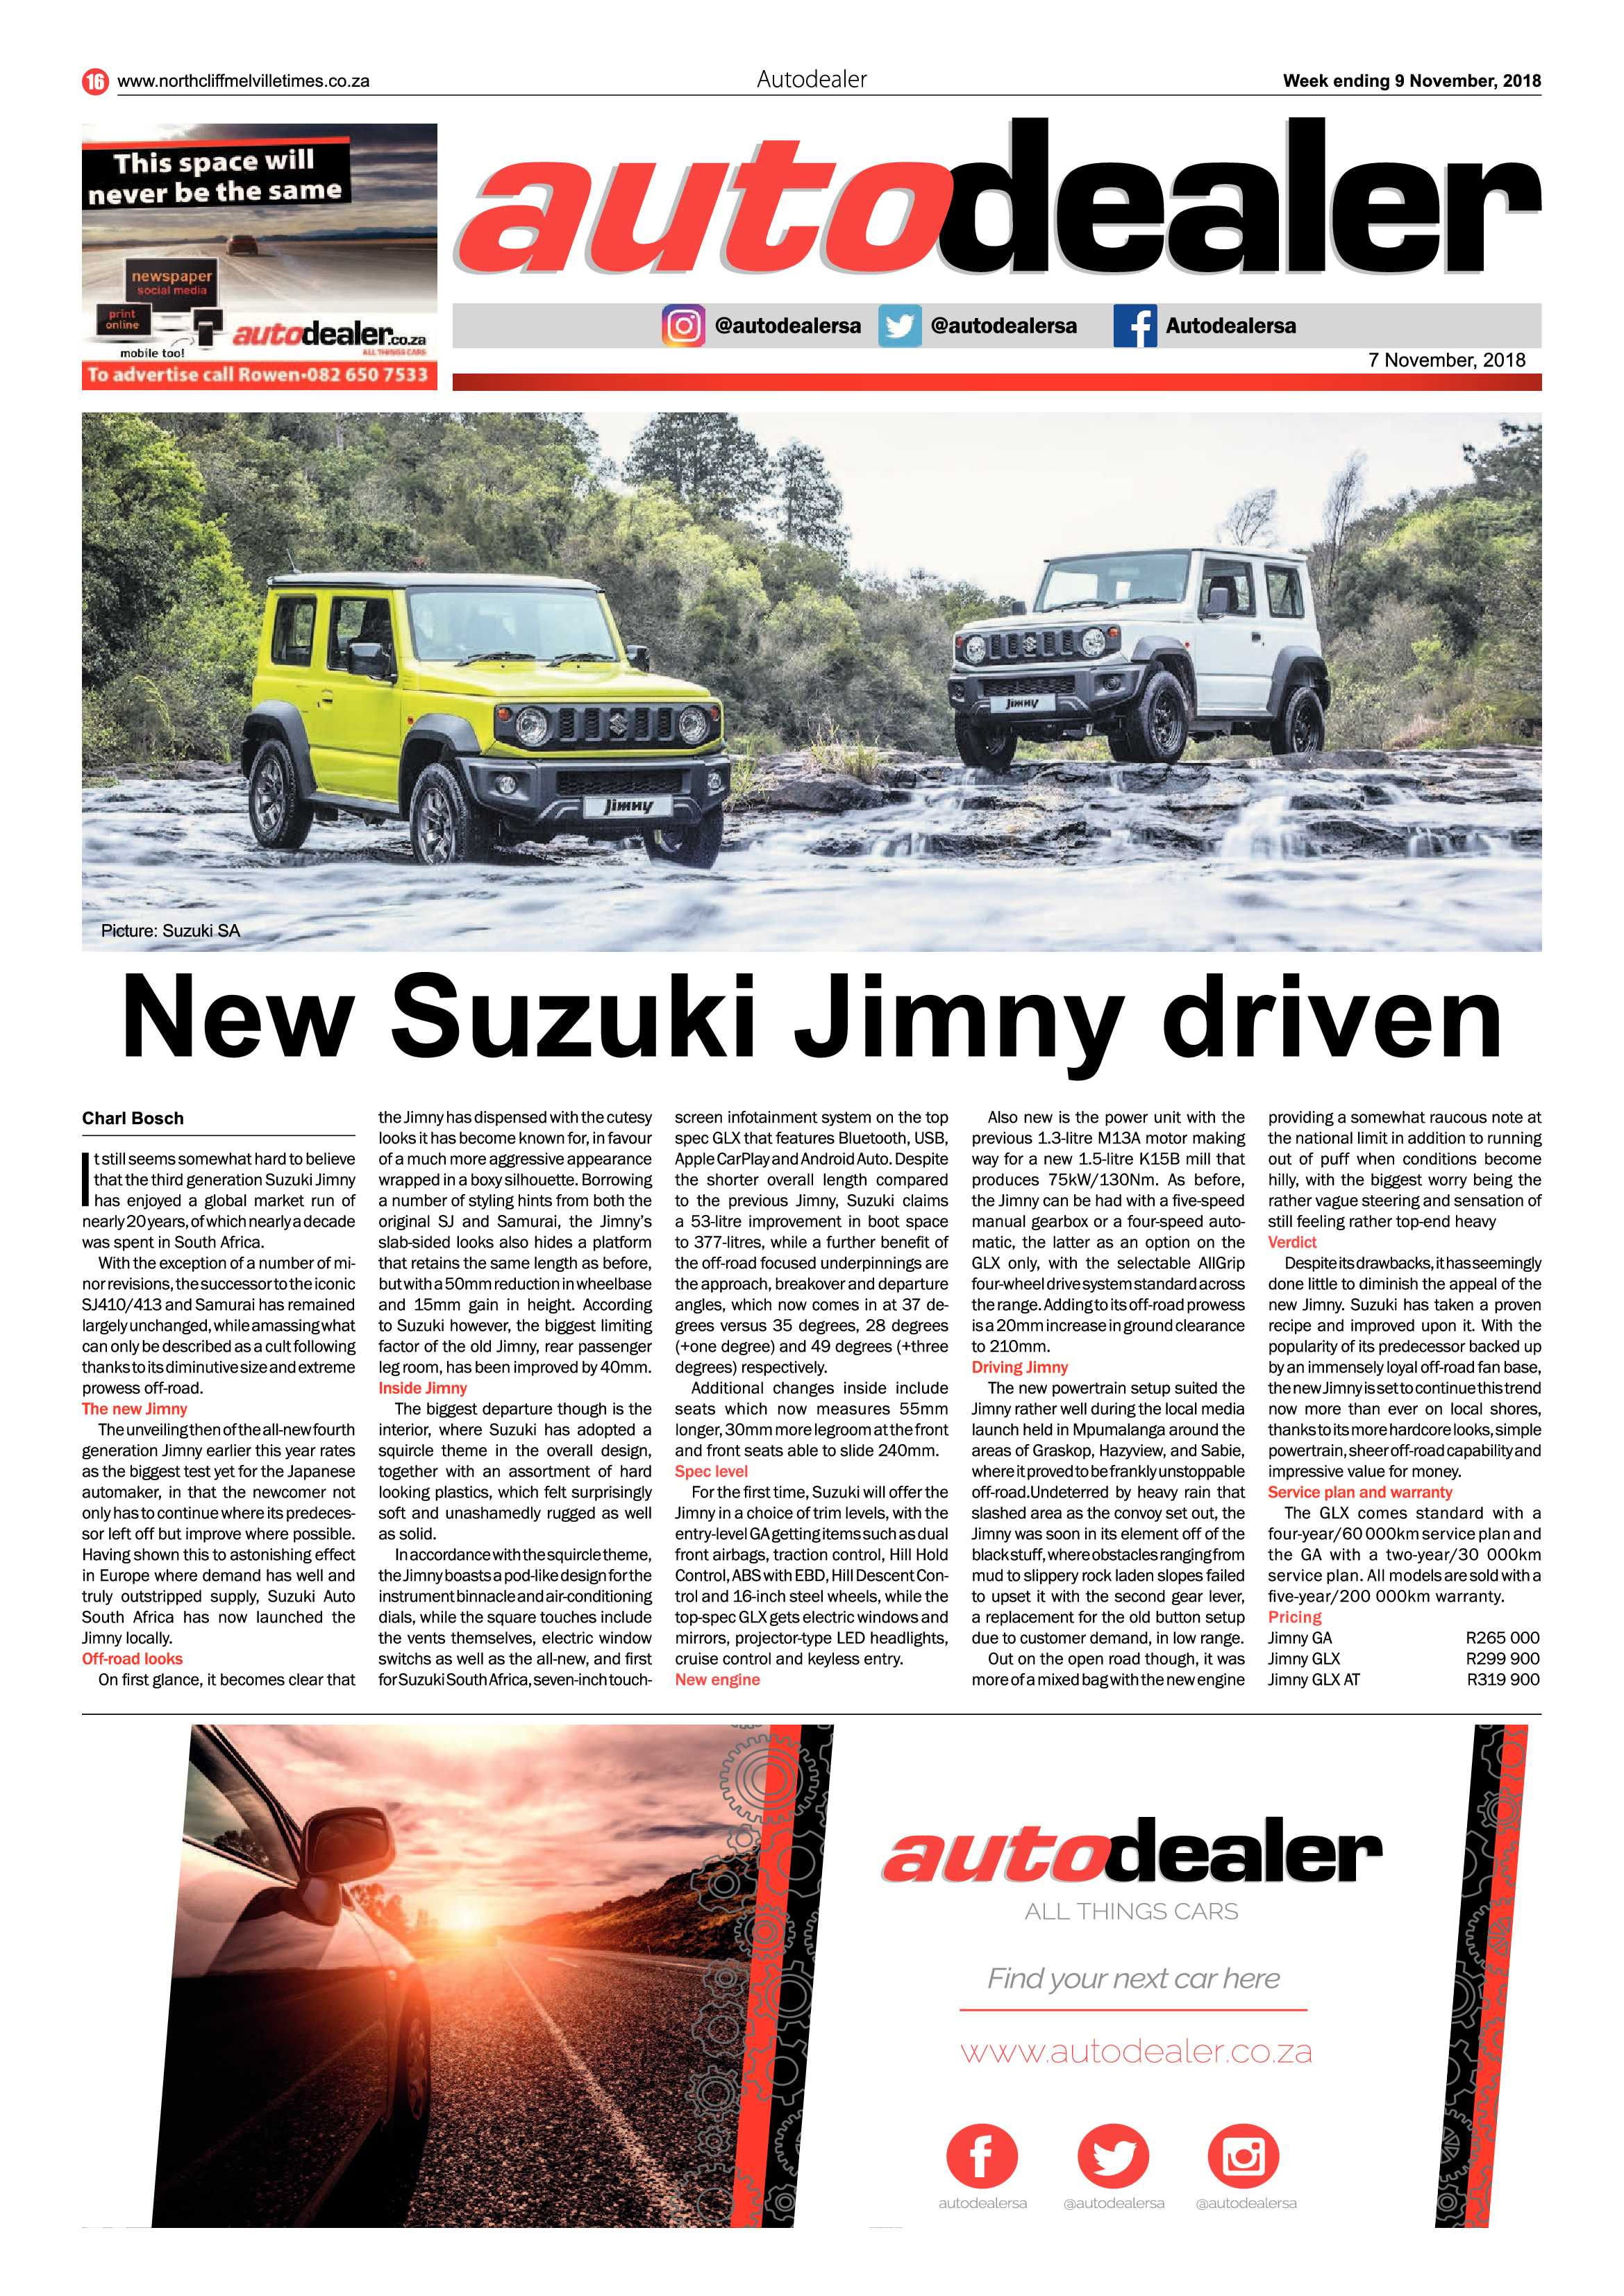 northcliff-melville-times-9-november-2018-epapers-page-16